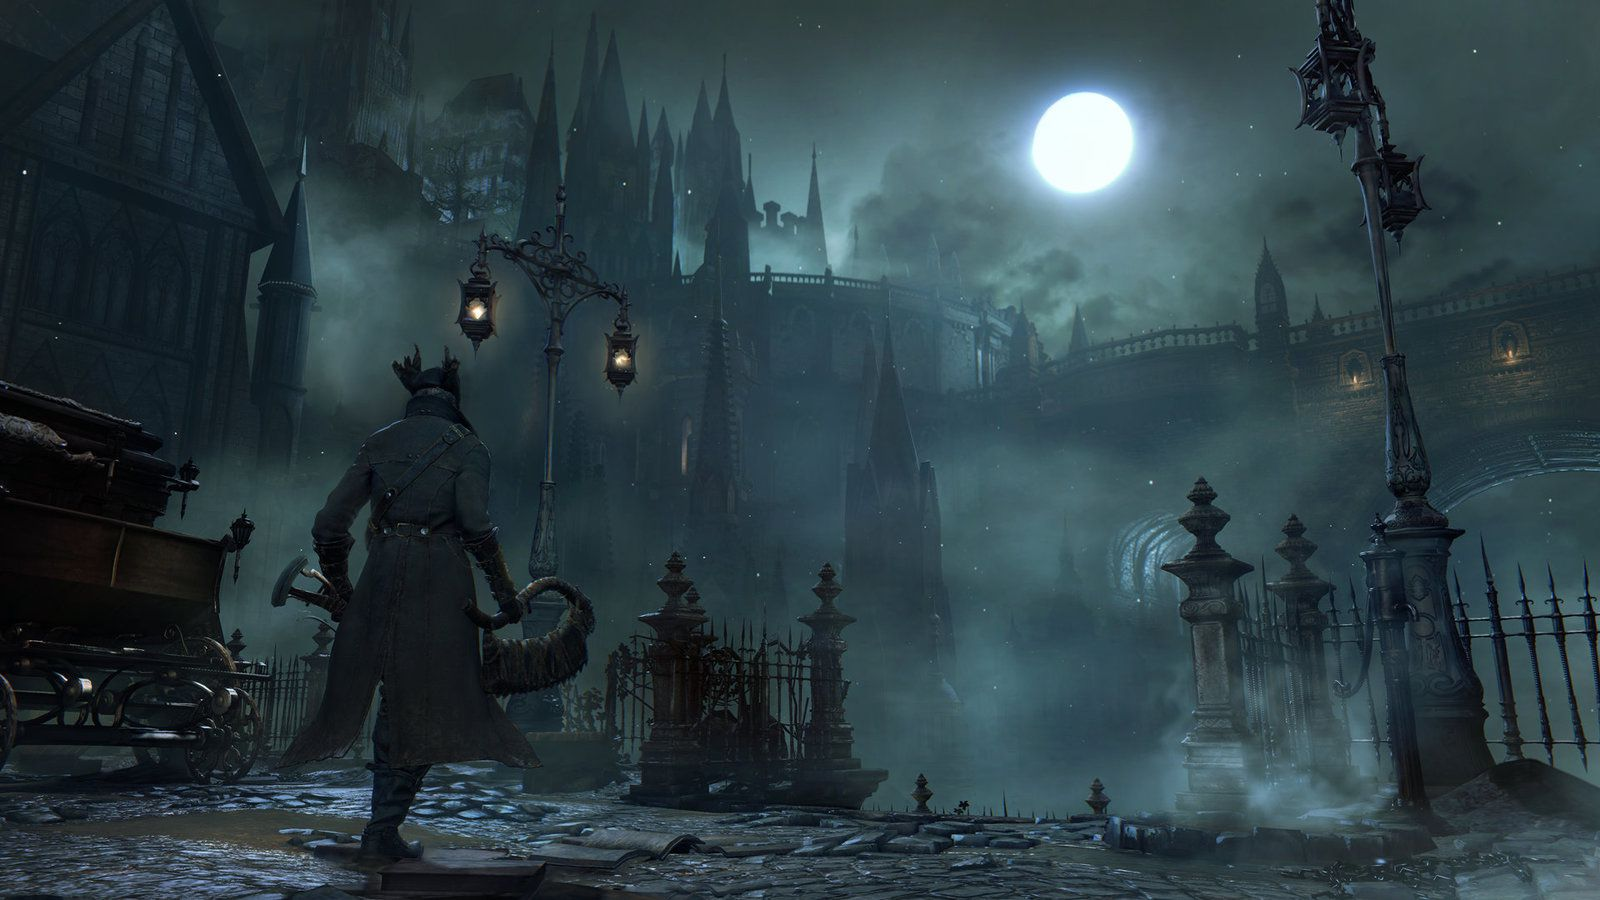 [CRITIQUE/TEST] Bloodborne